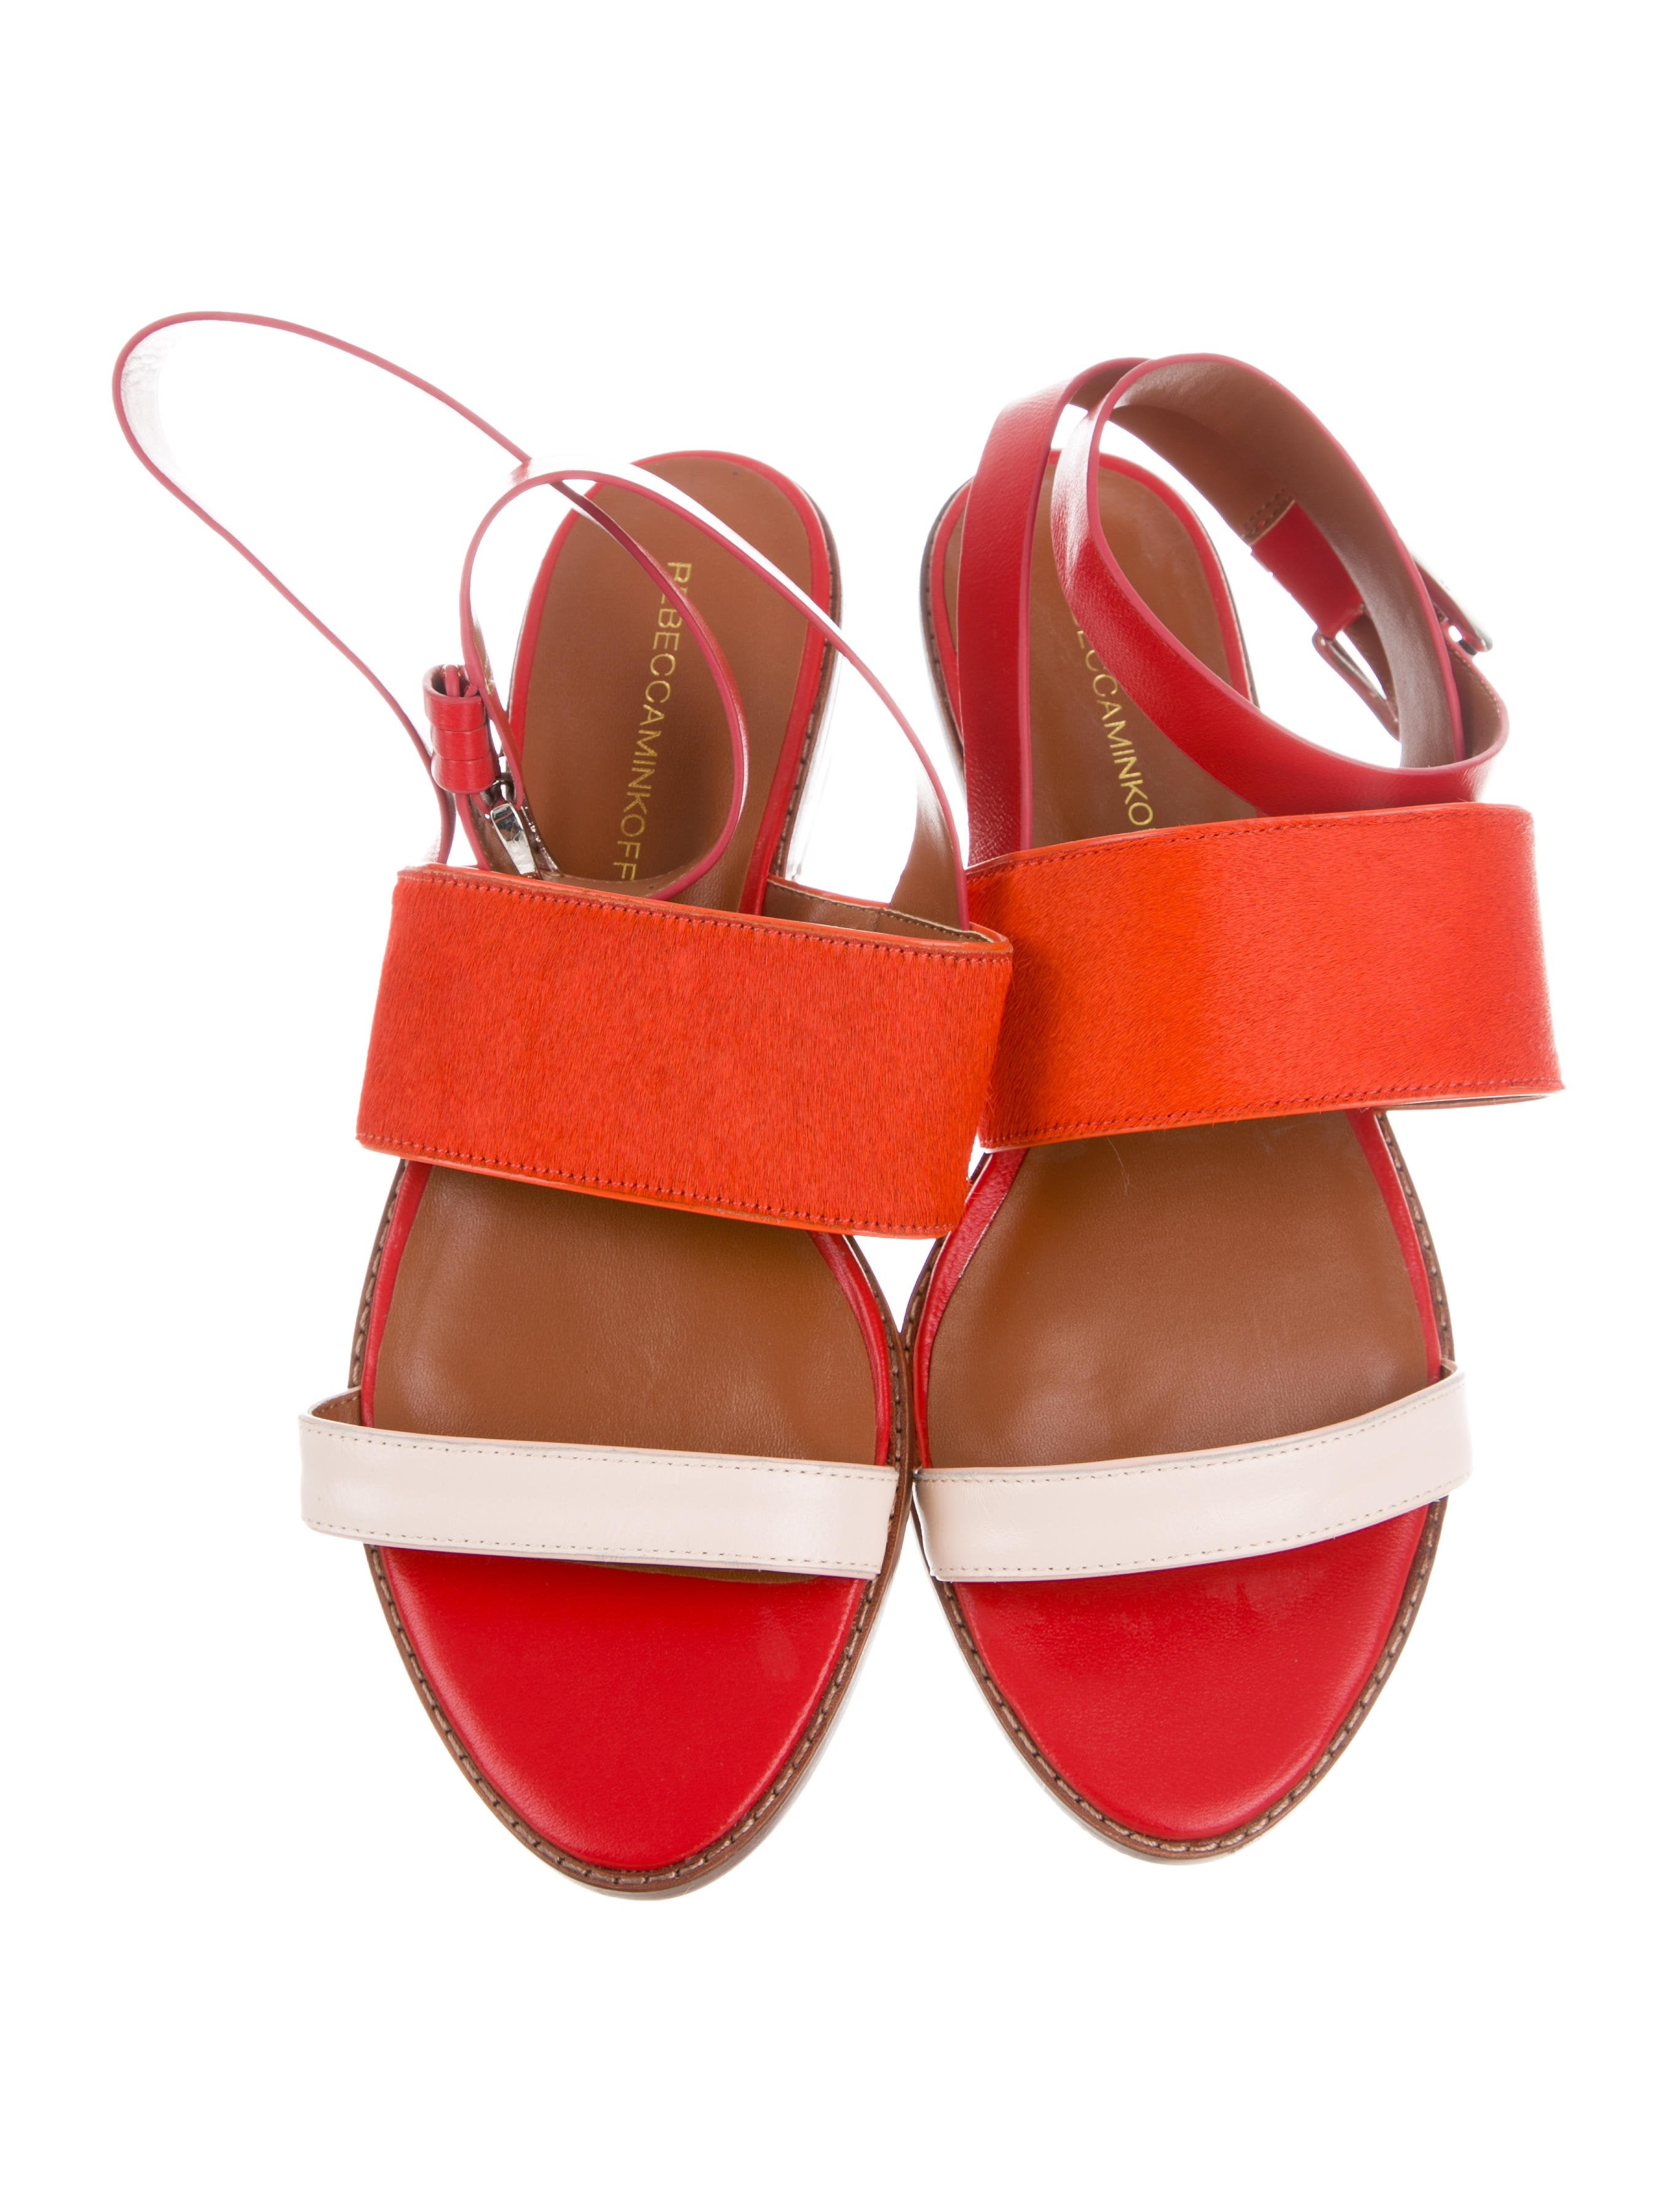 clearance many kinds of Rebecca Minkoff Ponyhair-Trimmed Leather Sandals sale best seller cheap Inexpensive clearance authentic latest online ImUXdNuOSG